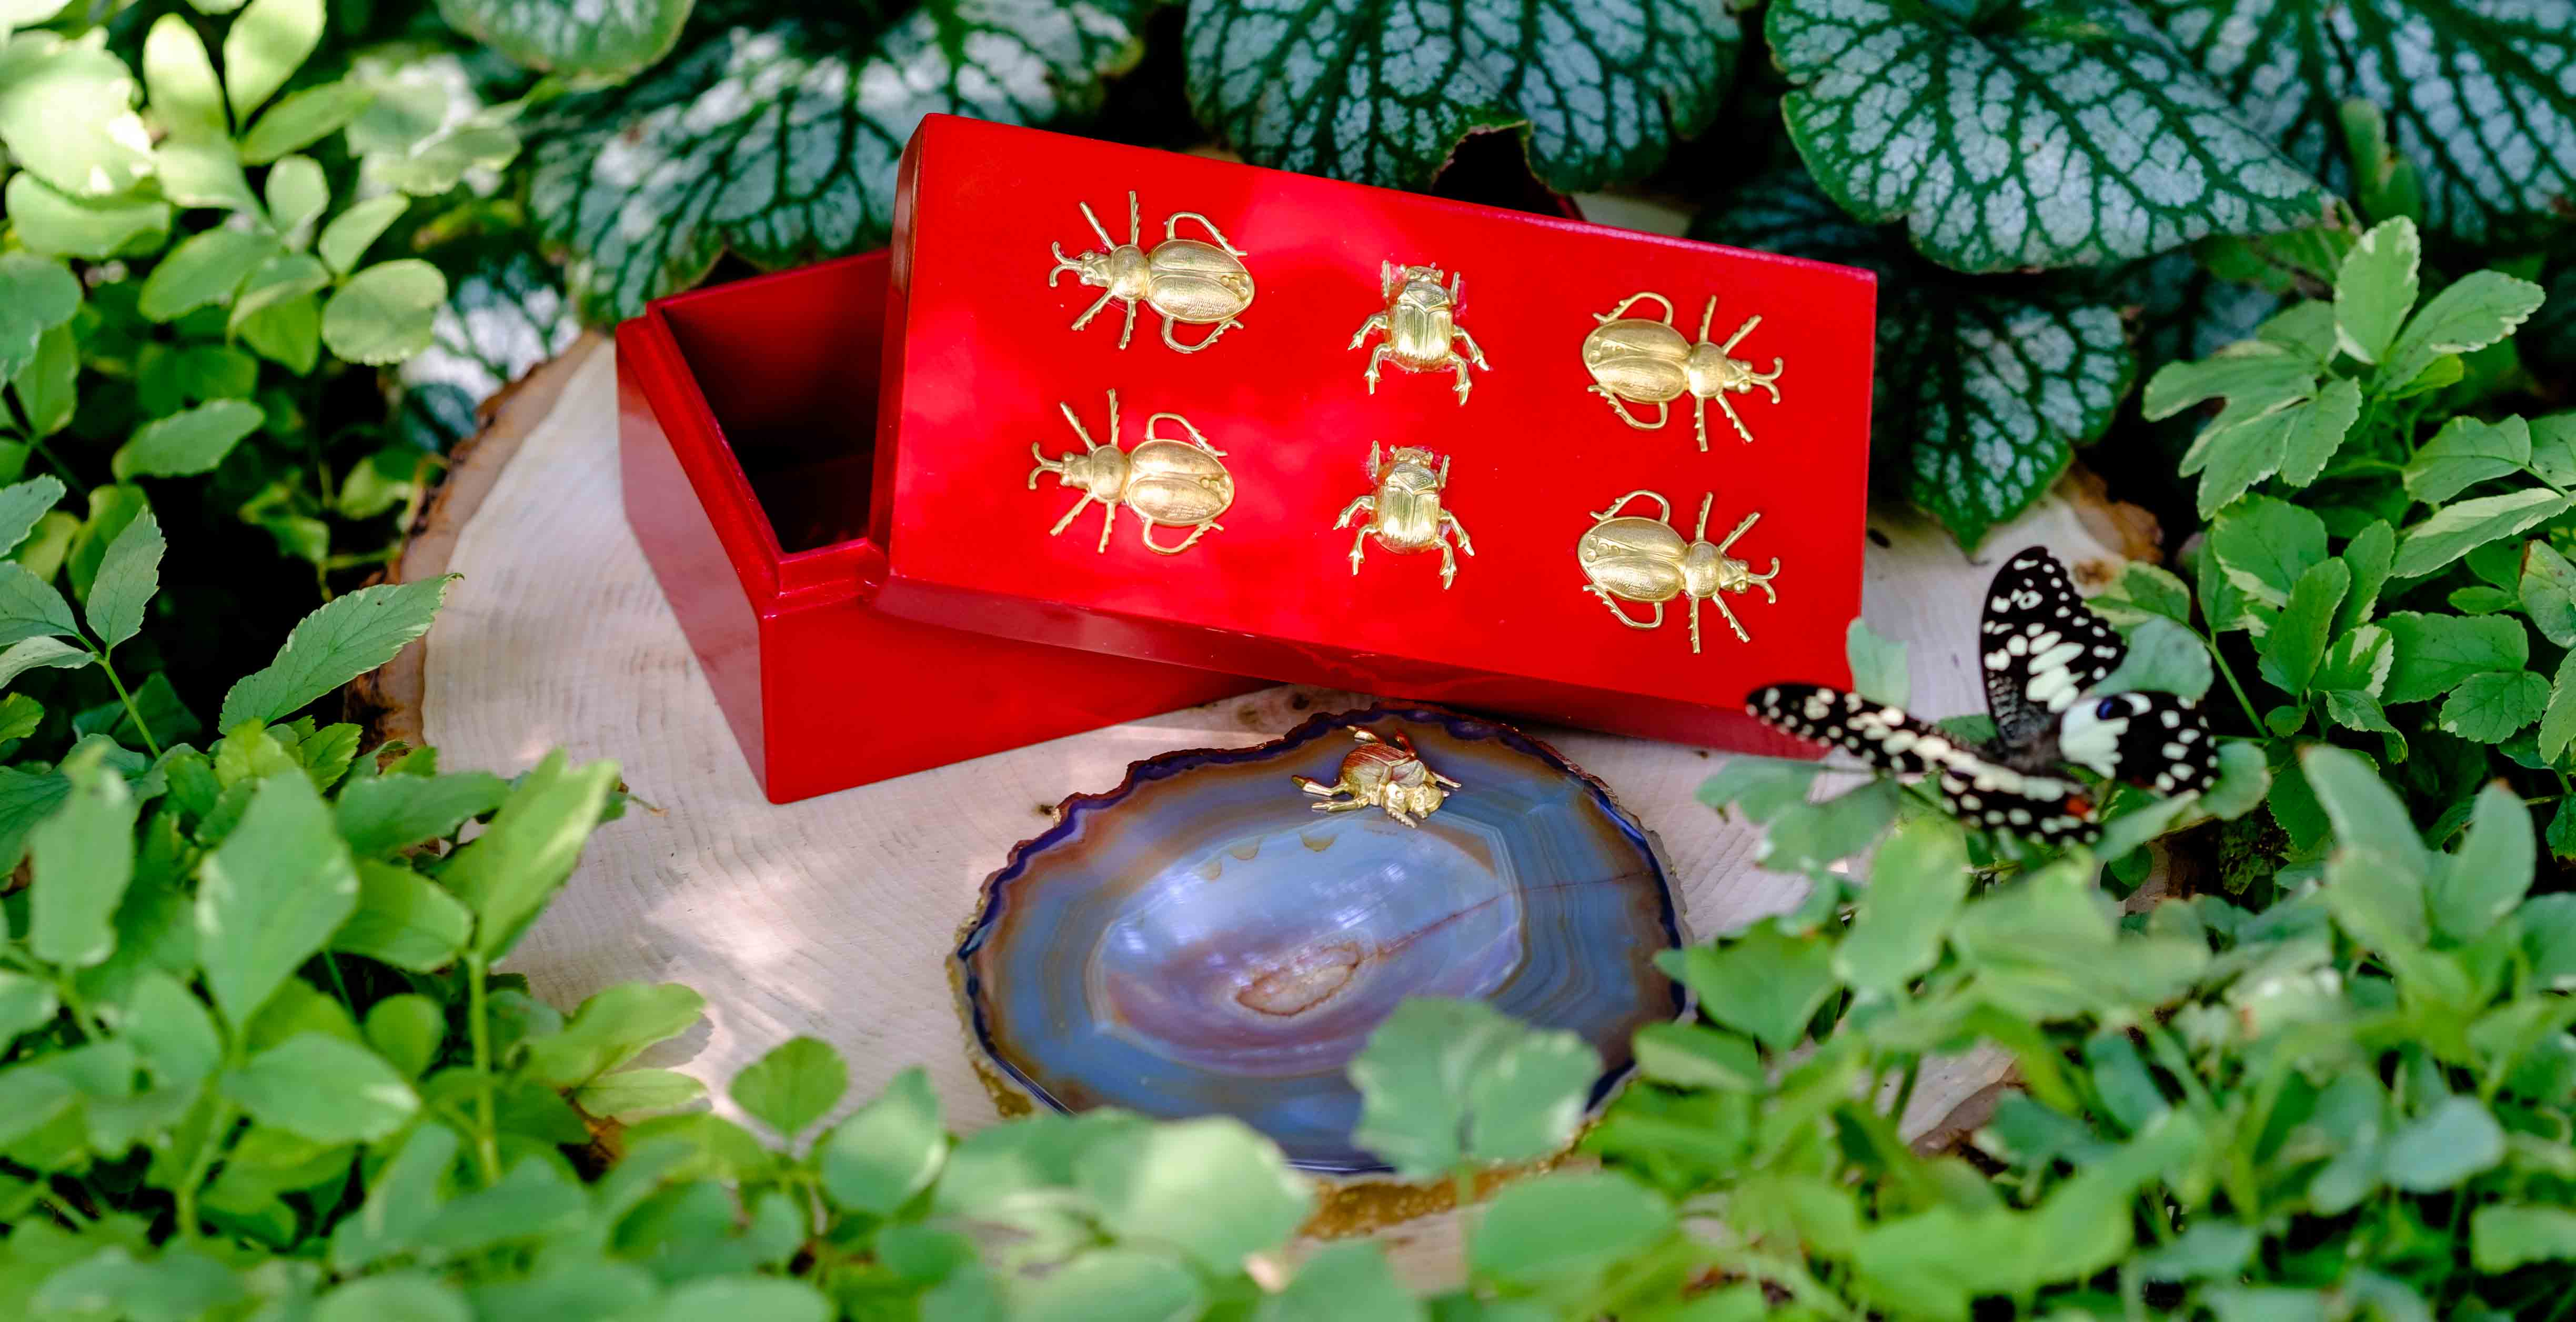 Medium Red Lacquer Box with brass bugs, Red is the color of Fall, runway inspired Fashion Fall 2017-18